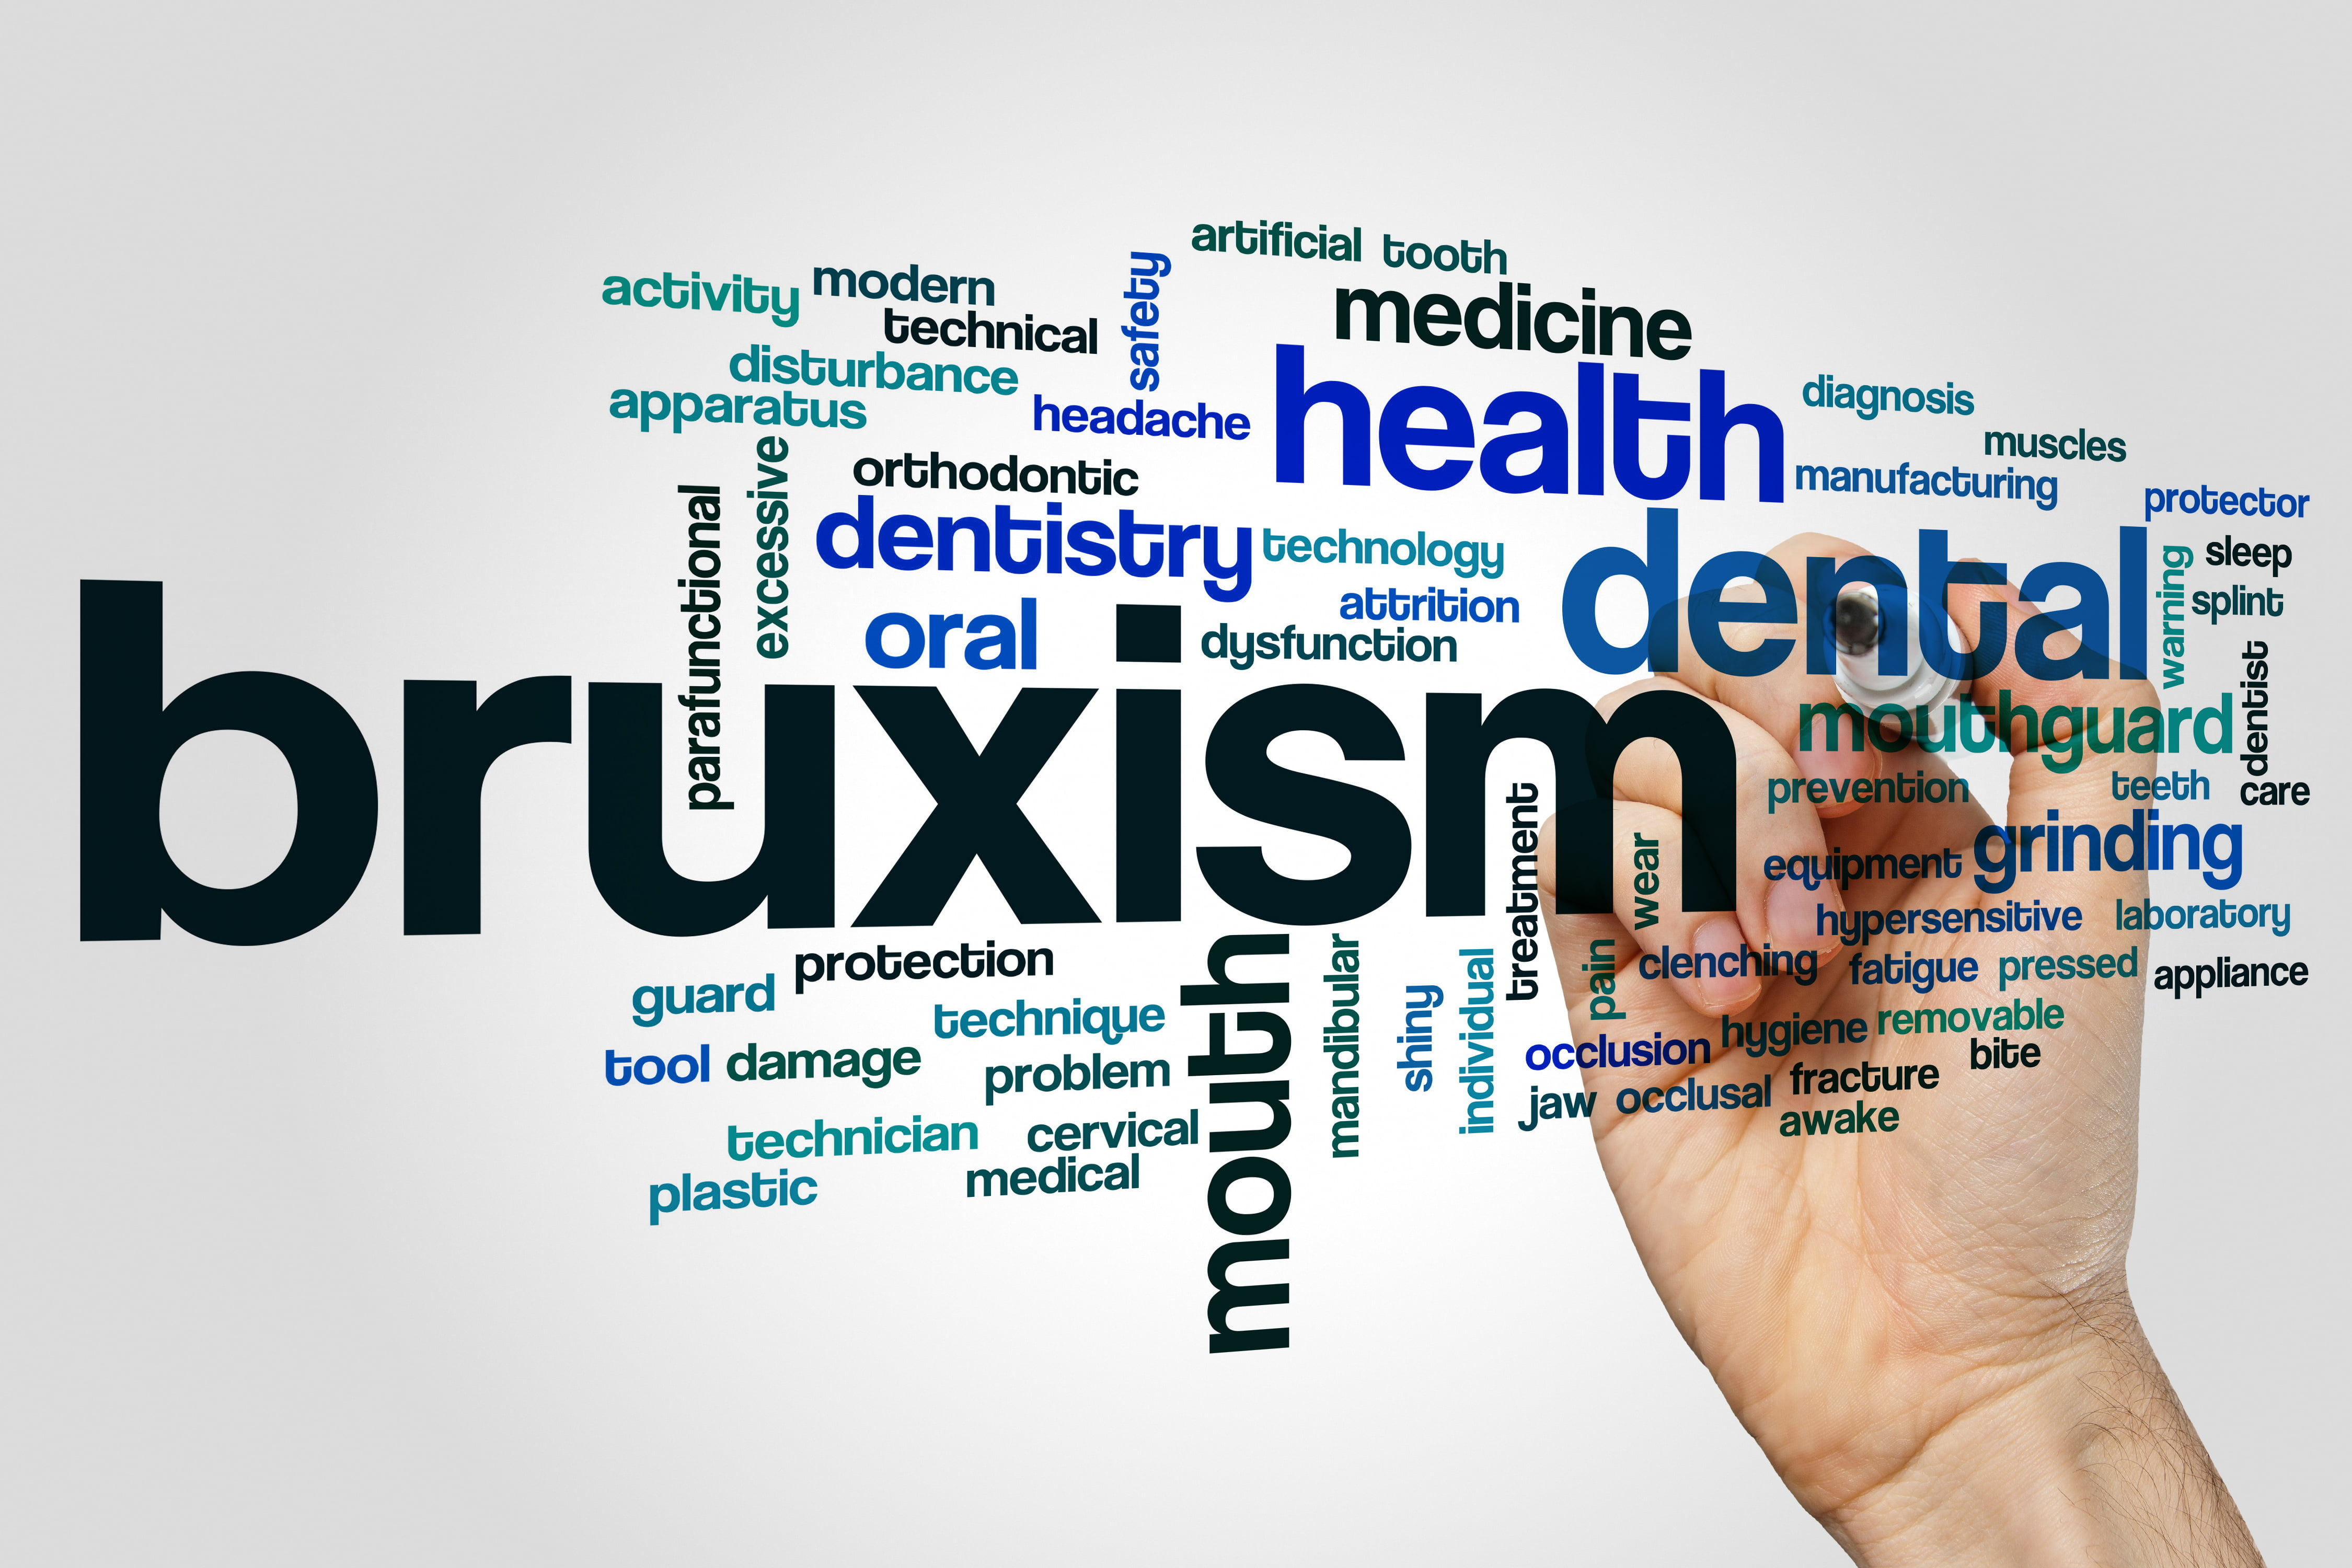 Is There a Connection Between Tori and Bruxism, a Reply from the Sacramento Dentistry Group